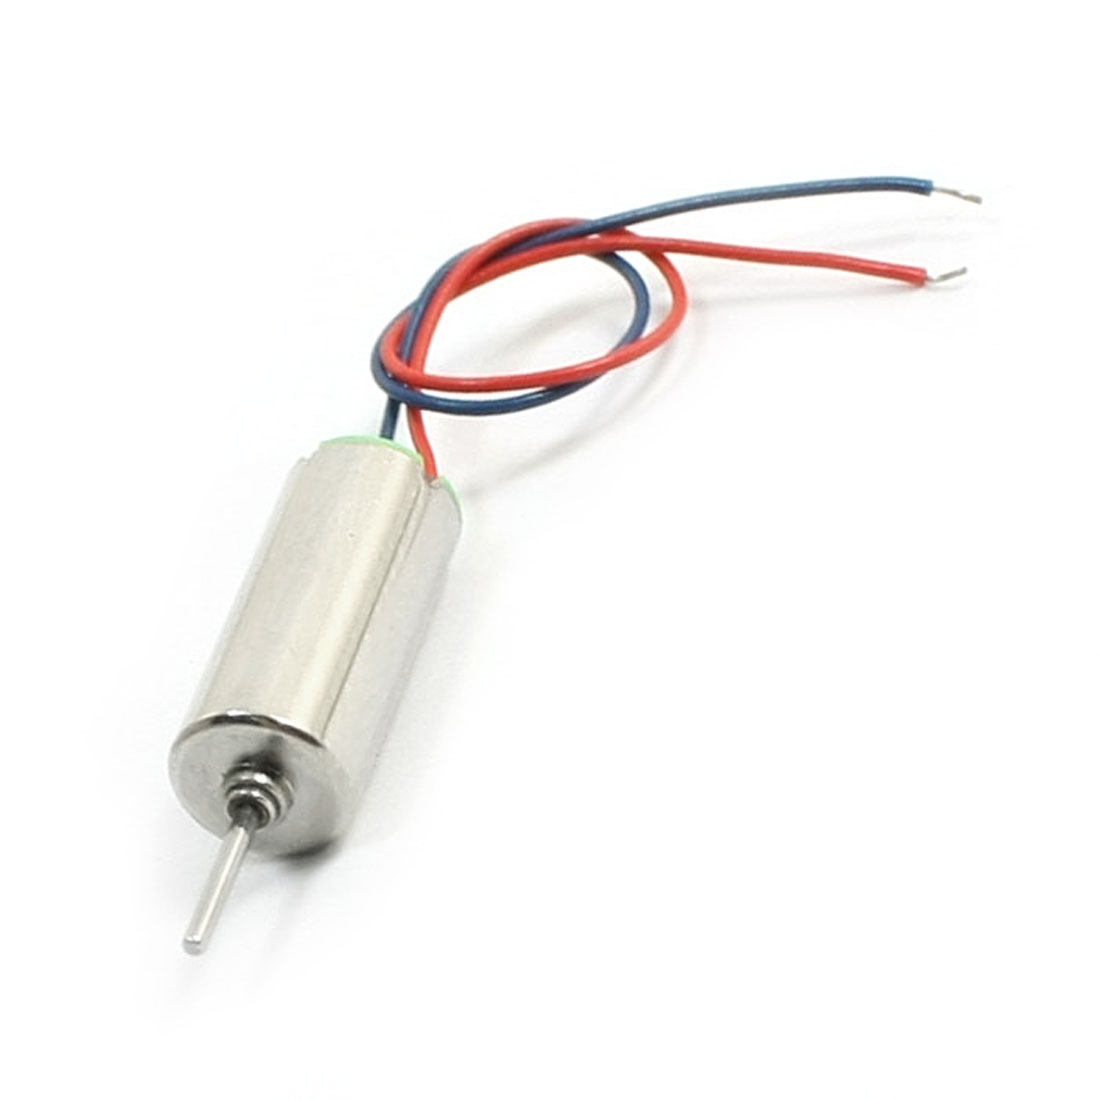 7mm x 14mm DC3V 8000r/min 2 Wire Cylinder Hollow Cup Motor for RC Plane